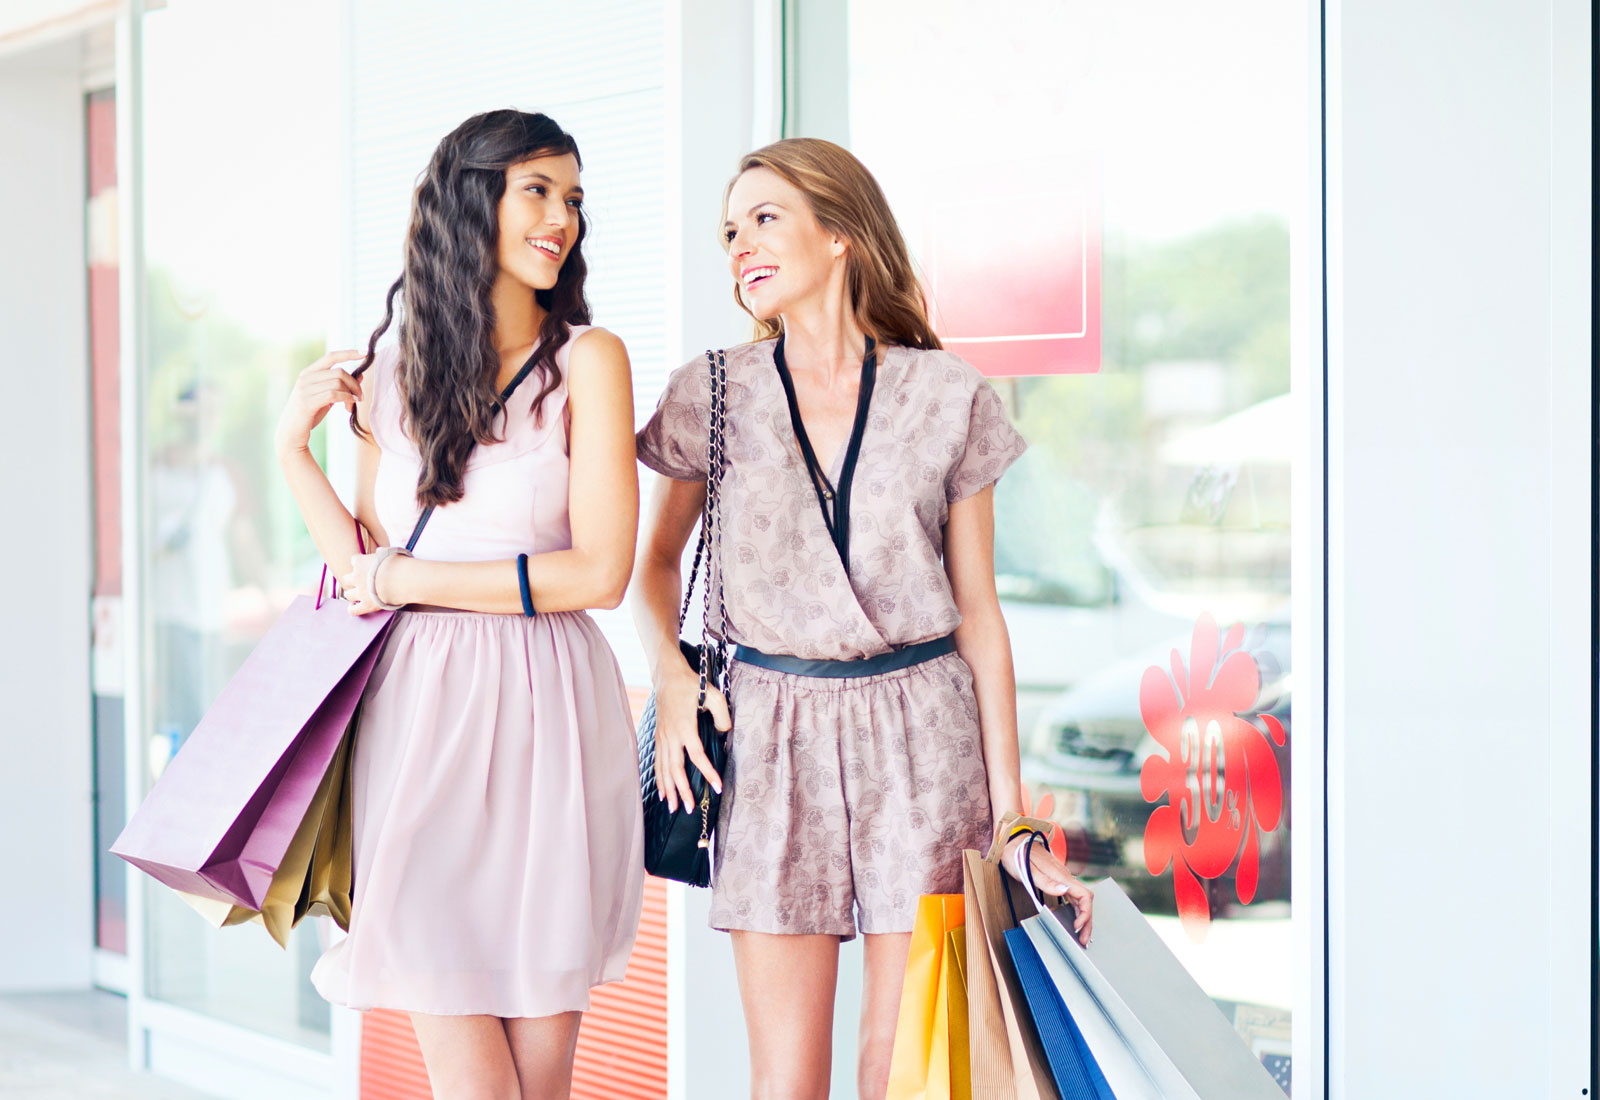 ladies shopping and dining - 1600×750